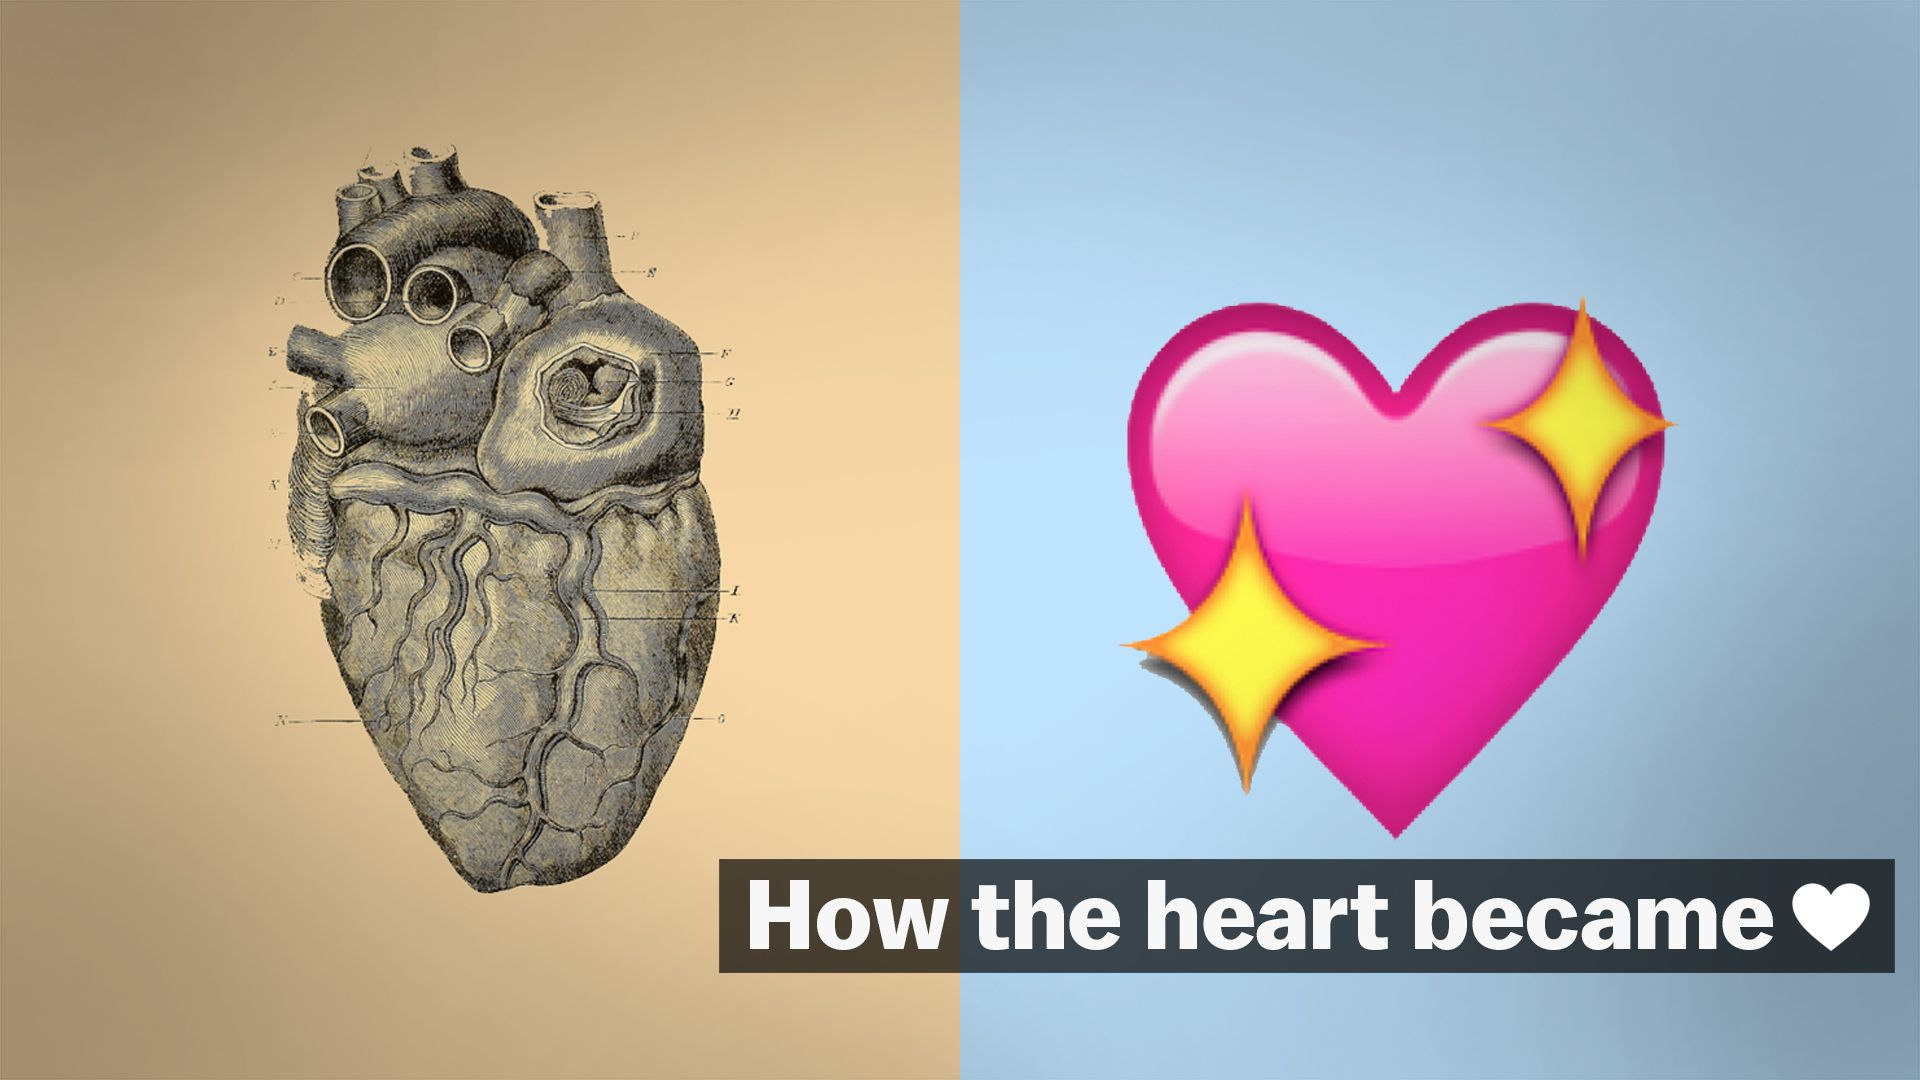 How the heart became vox biocorpaavc